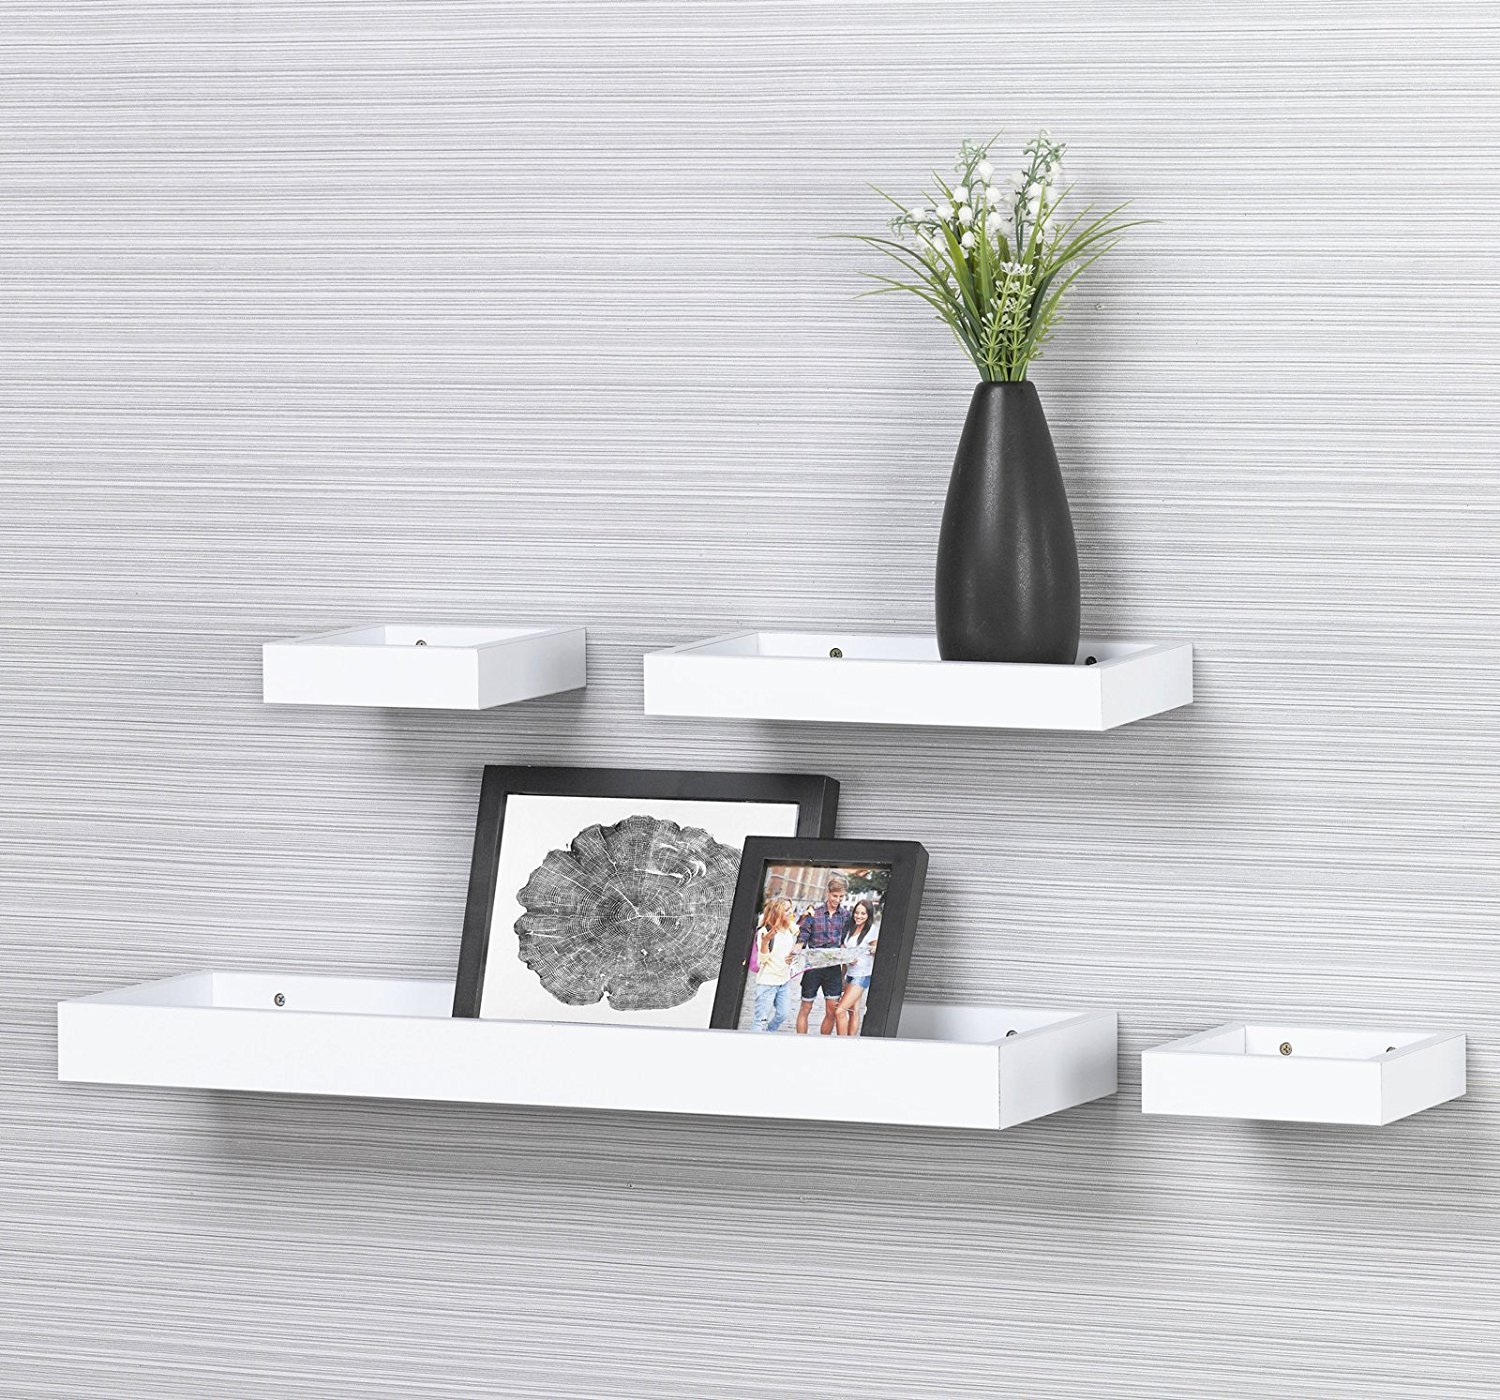 Amazon.com: O&K Furniture Set of 4 Floating Ledge Shelves for Pictures and  Frames, White: Home & Kitchen